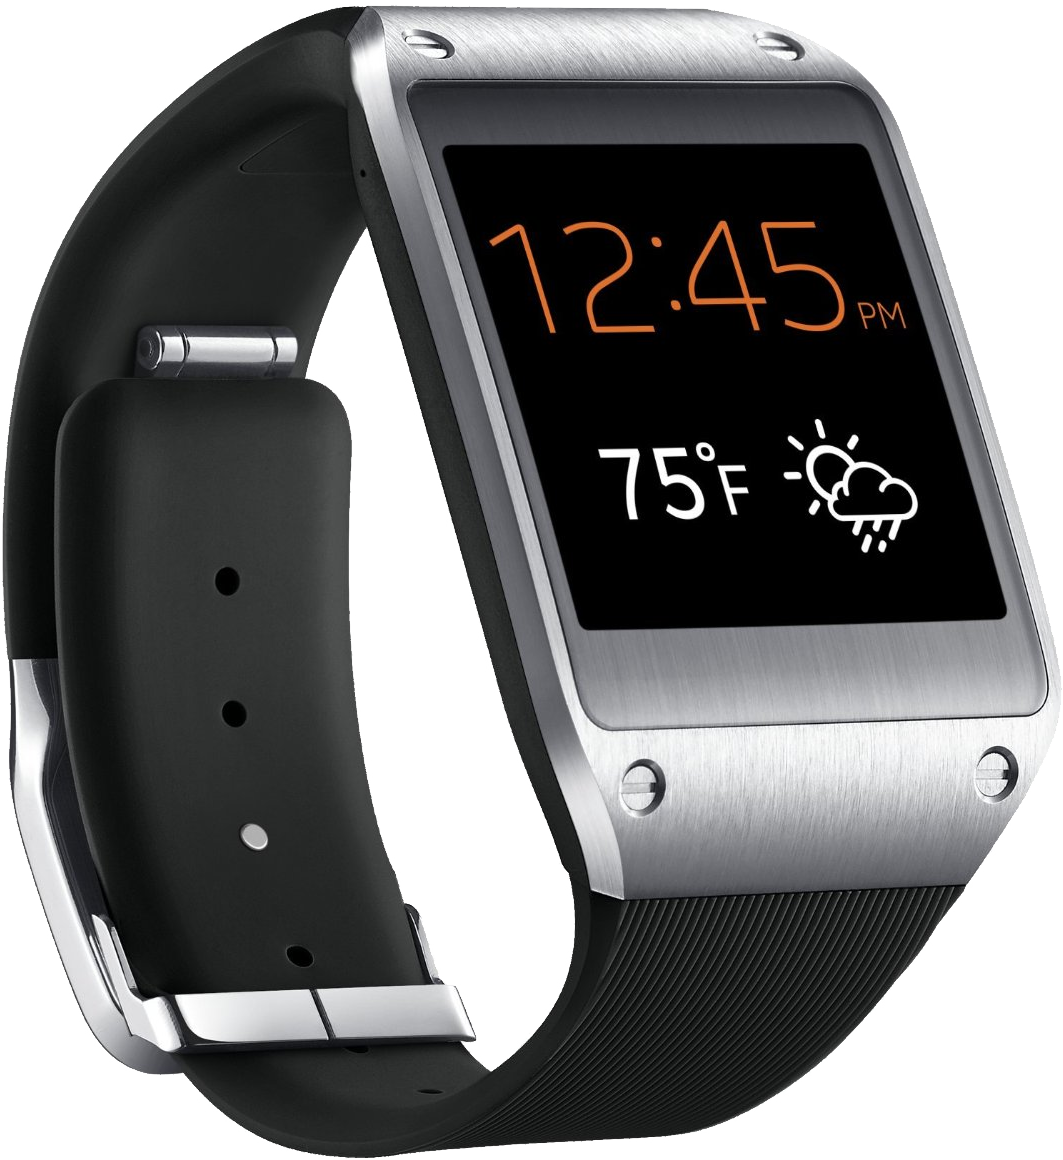 Watches Png Images Free Download Smart Watches Png